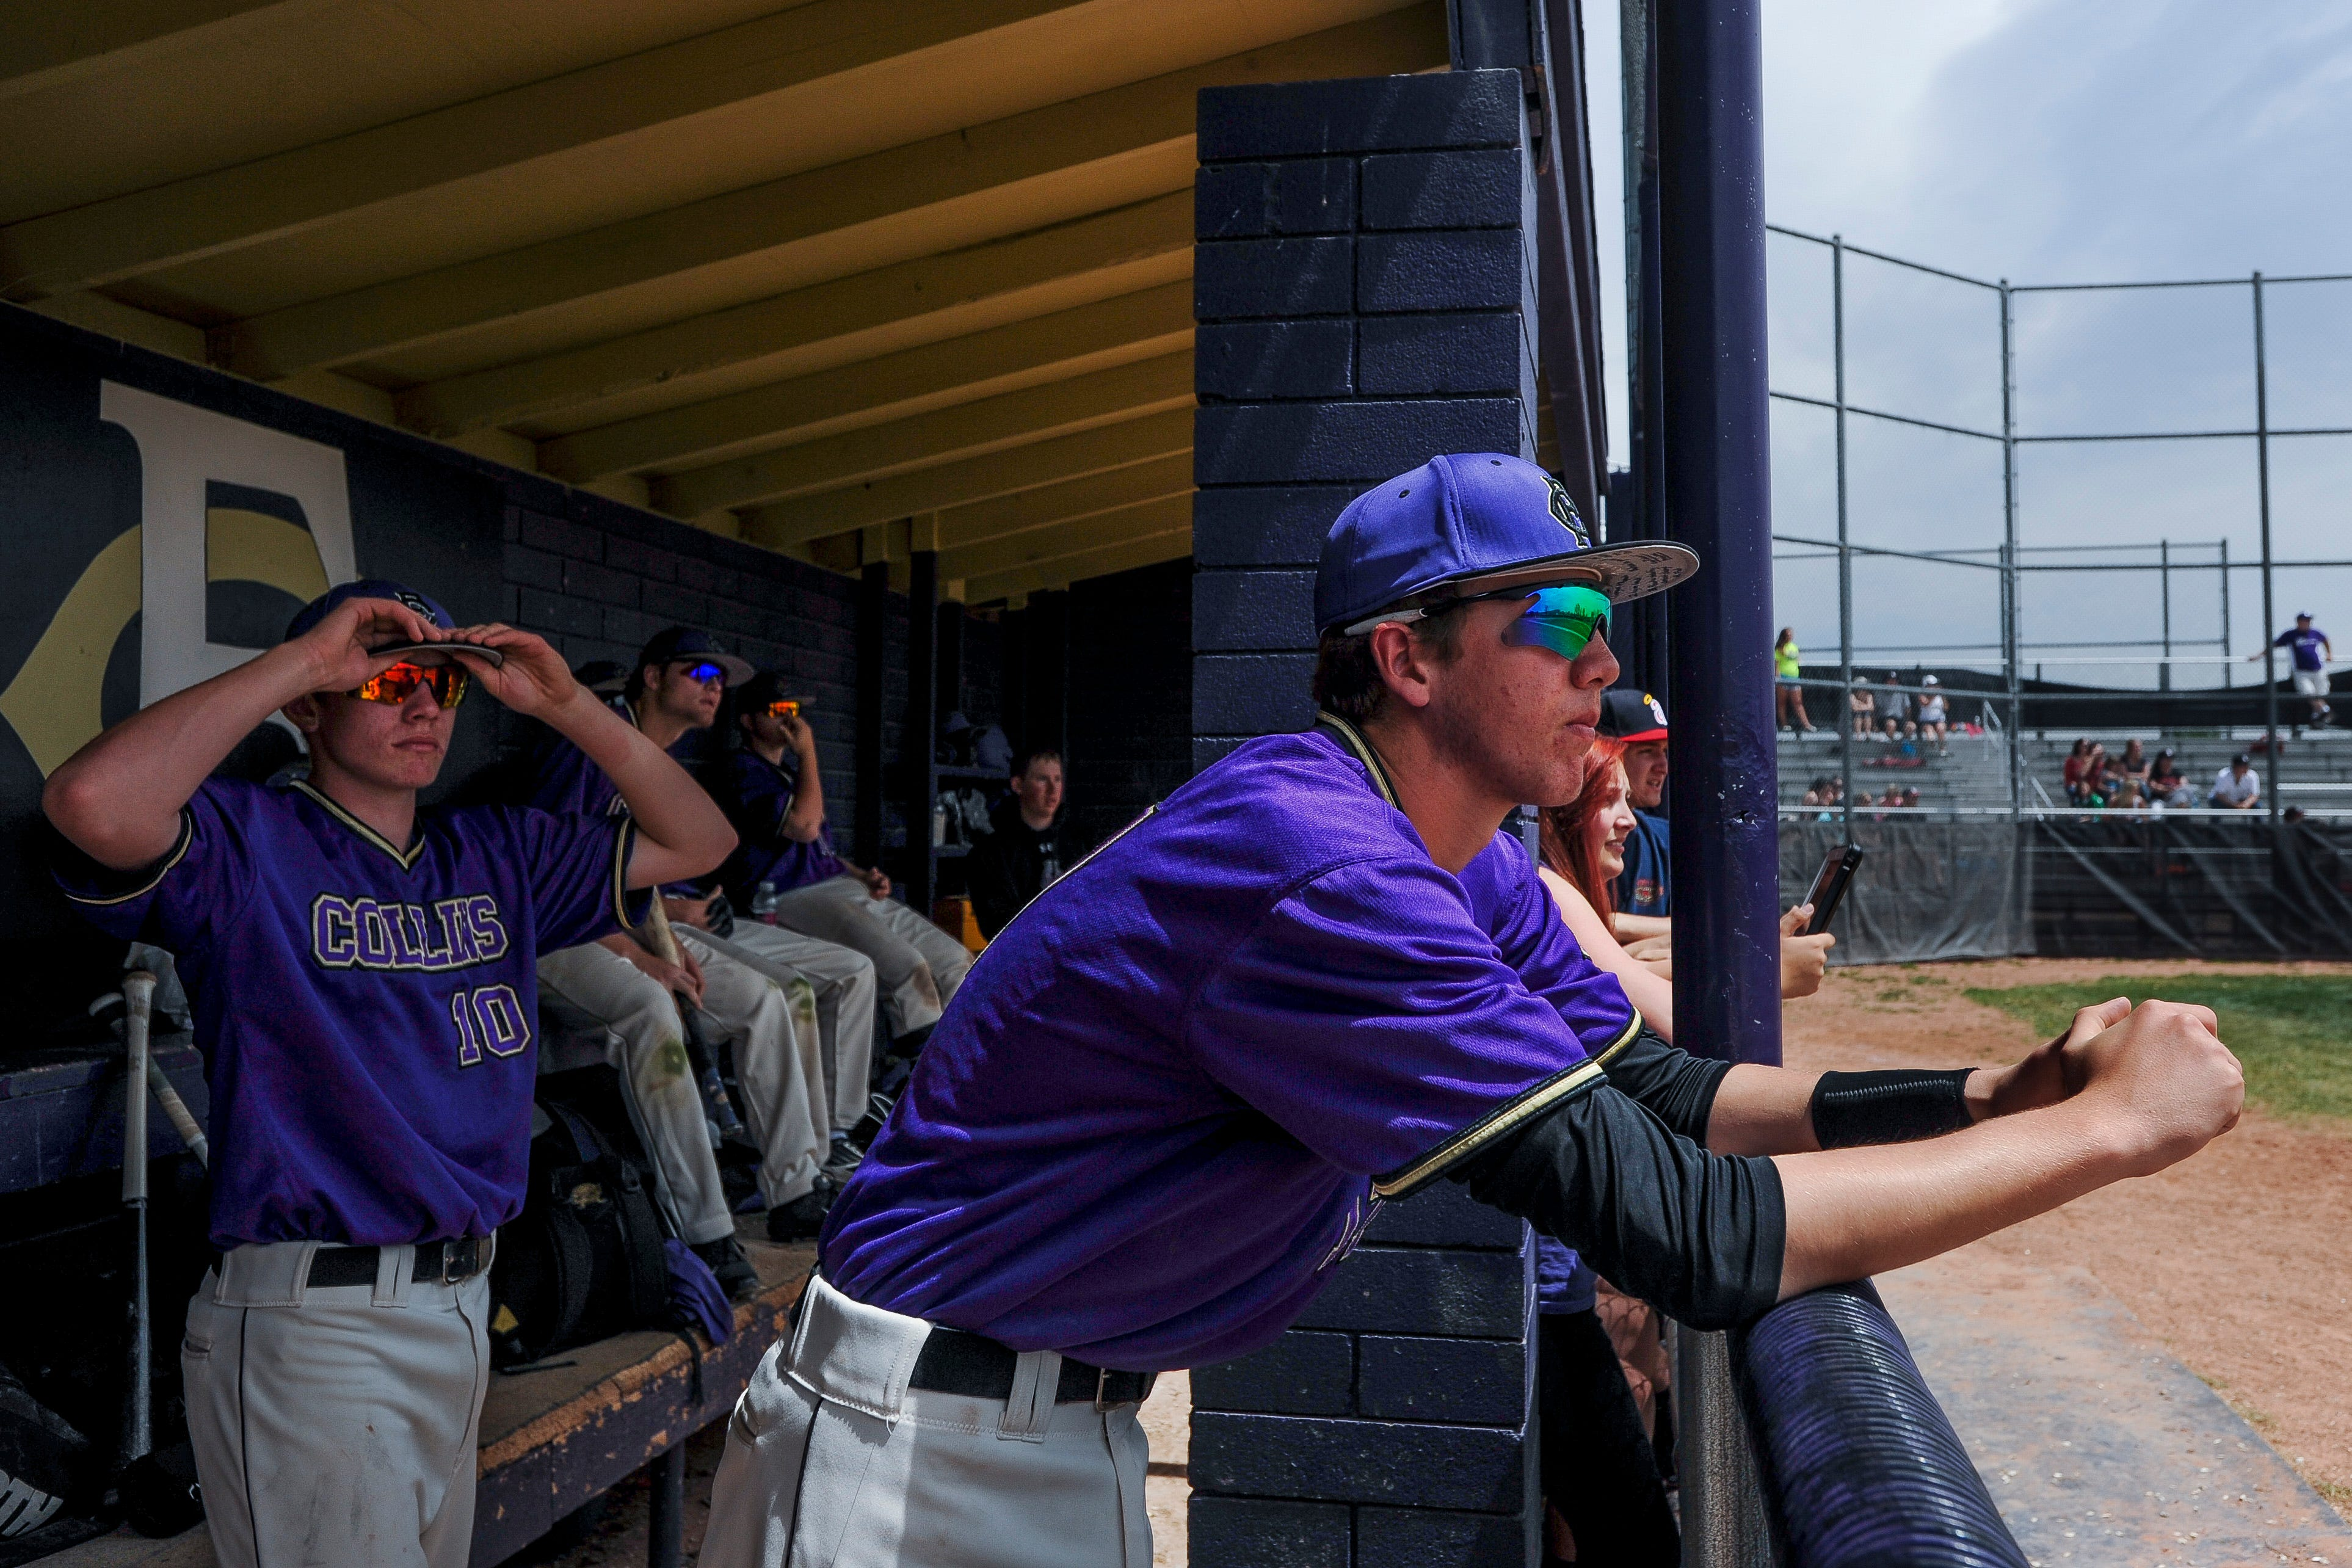 Fort Collins players watch the game from the dugout. Despite leading by as much as six, Fort Collins lost 8-7 to Durango on Saturday in Fort Collins.